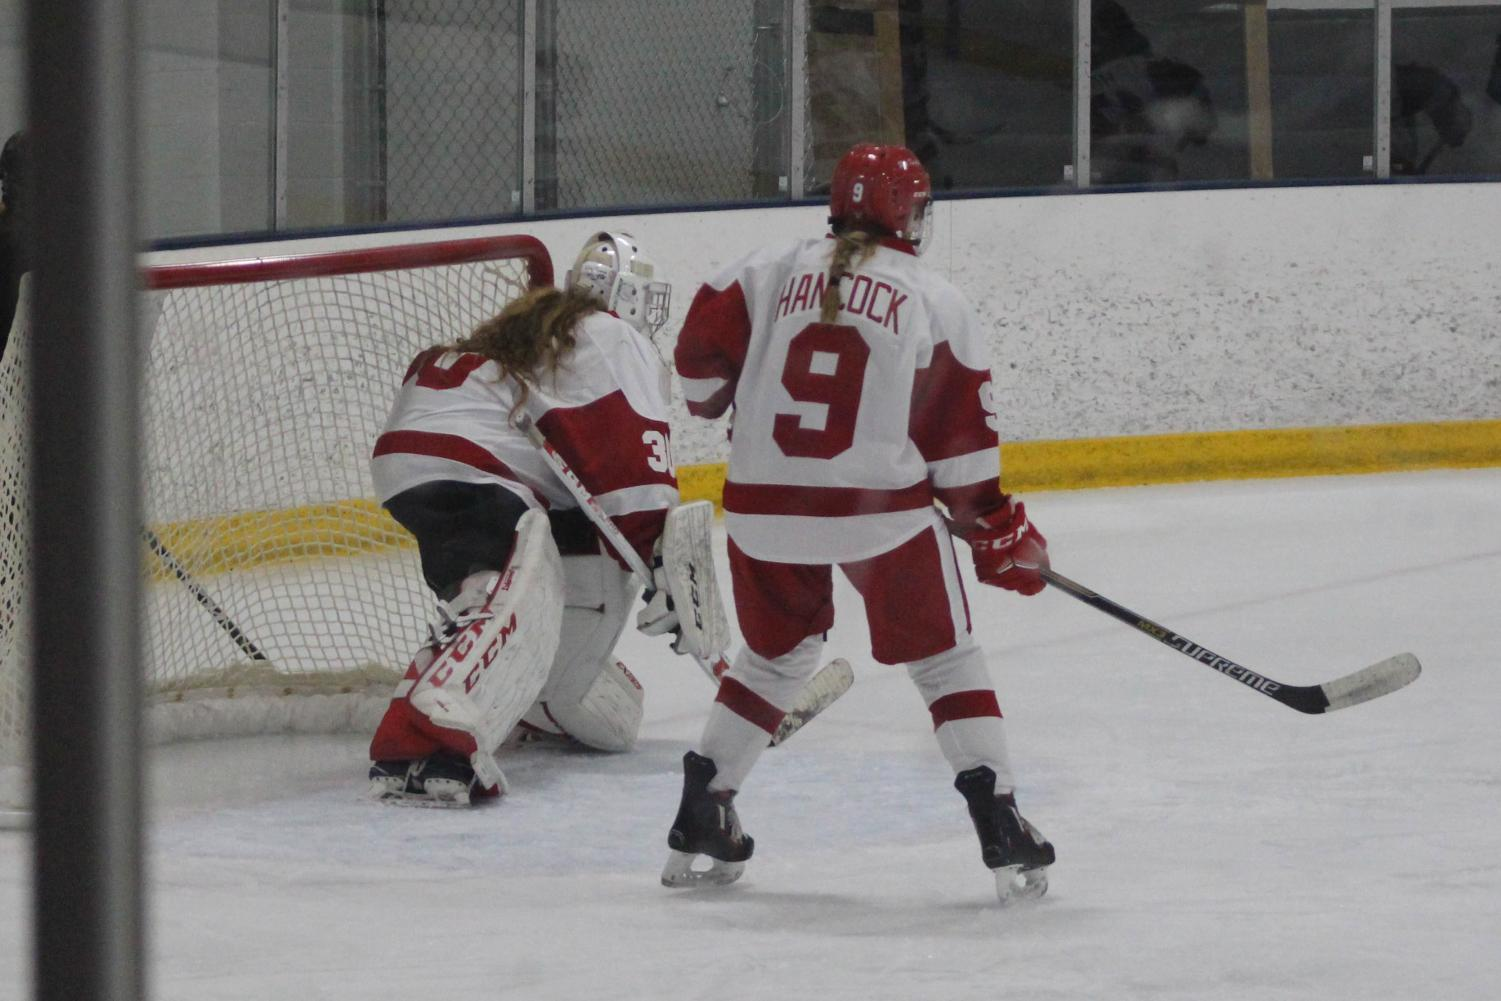 Sophomore Abby Hancock defending the goal.